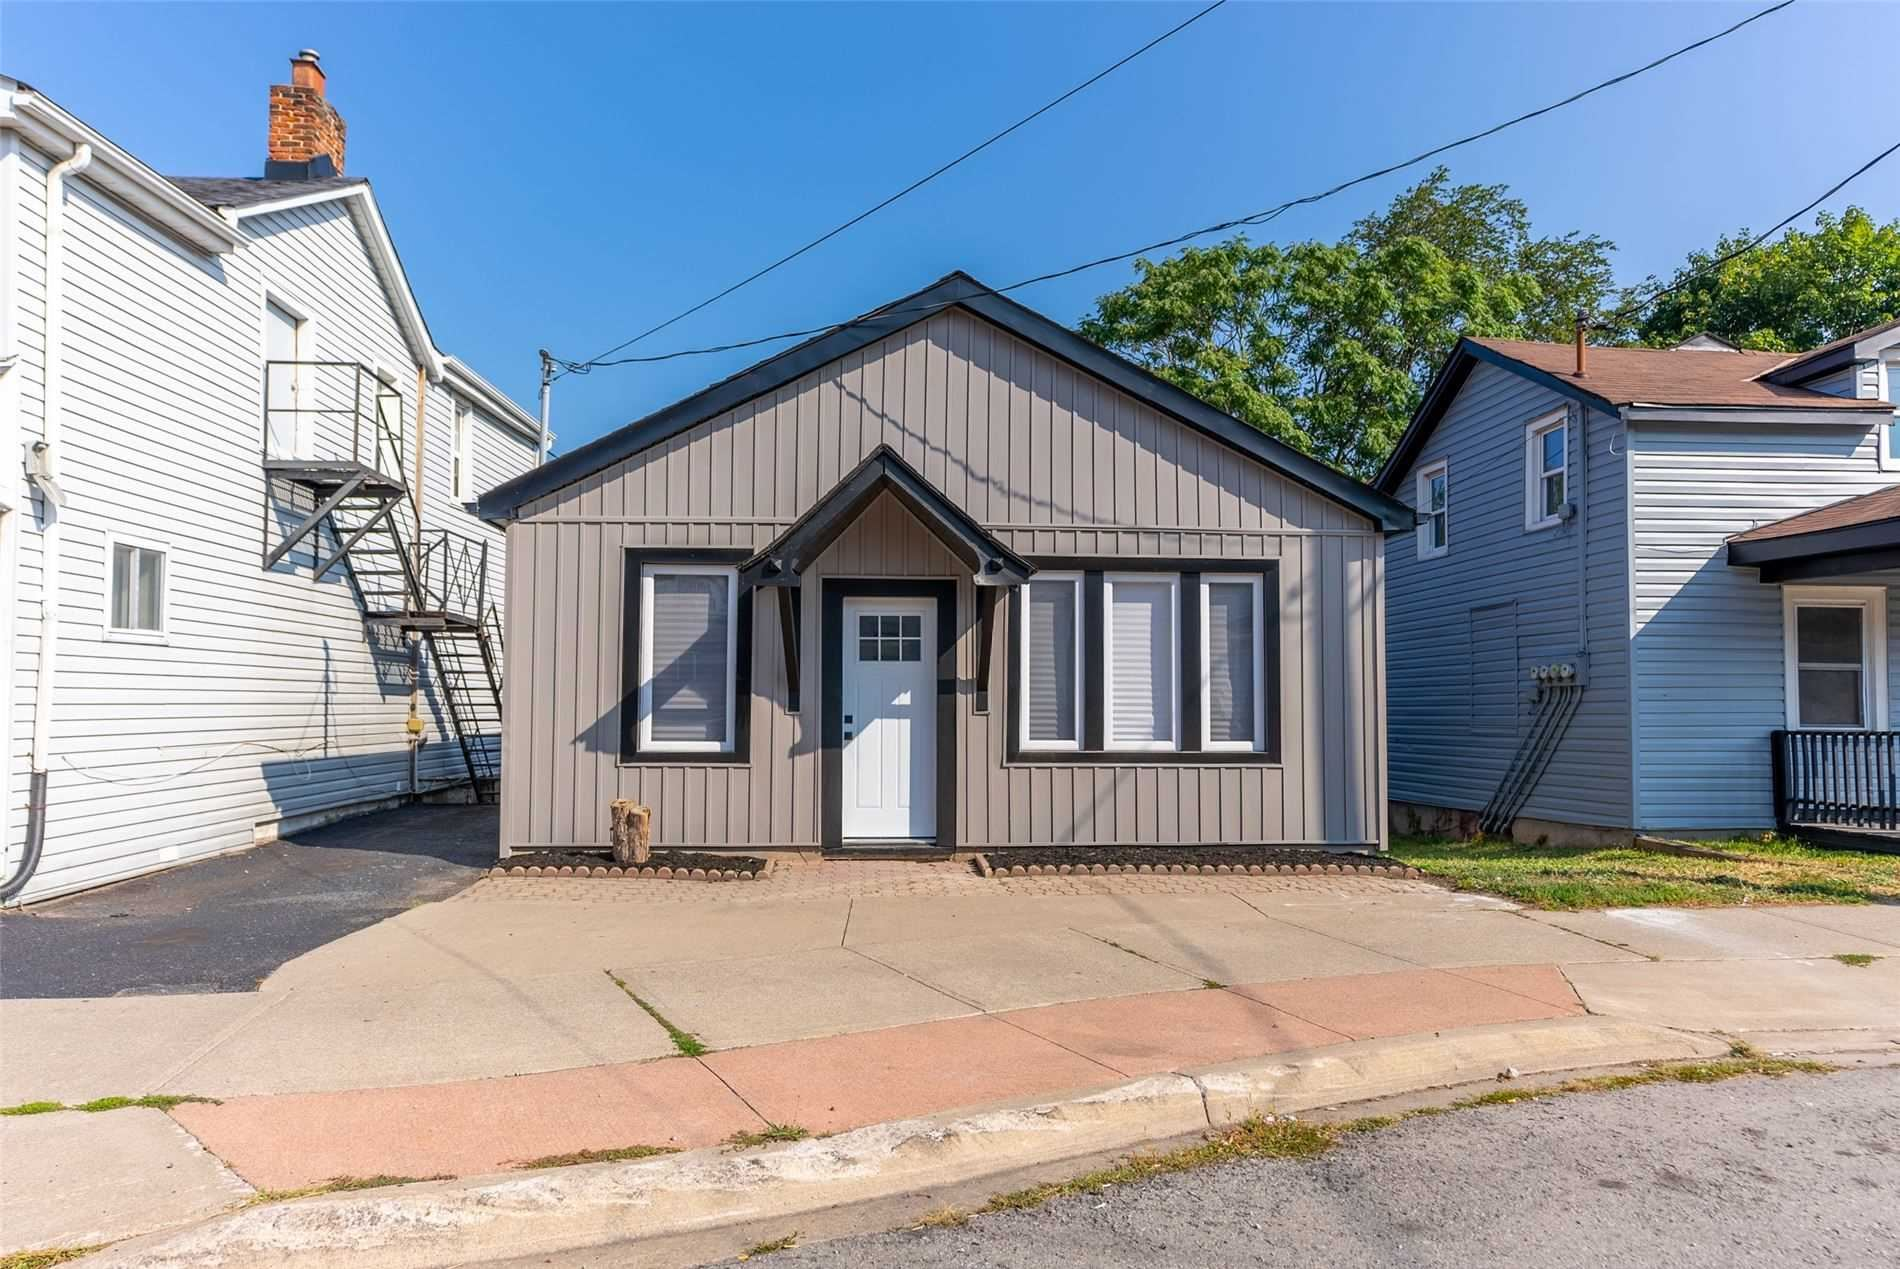 53 Queenston St, St. Catharines, ON L2R 2Z1 - MLS#: X5393174